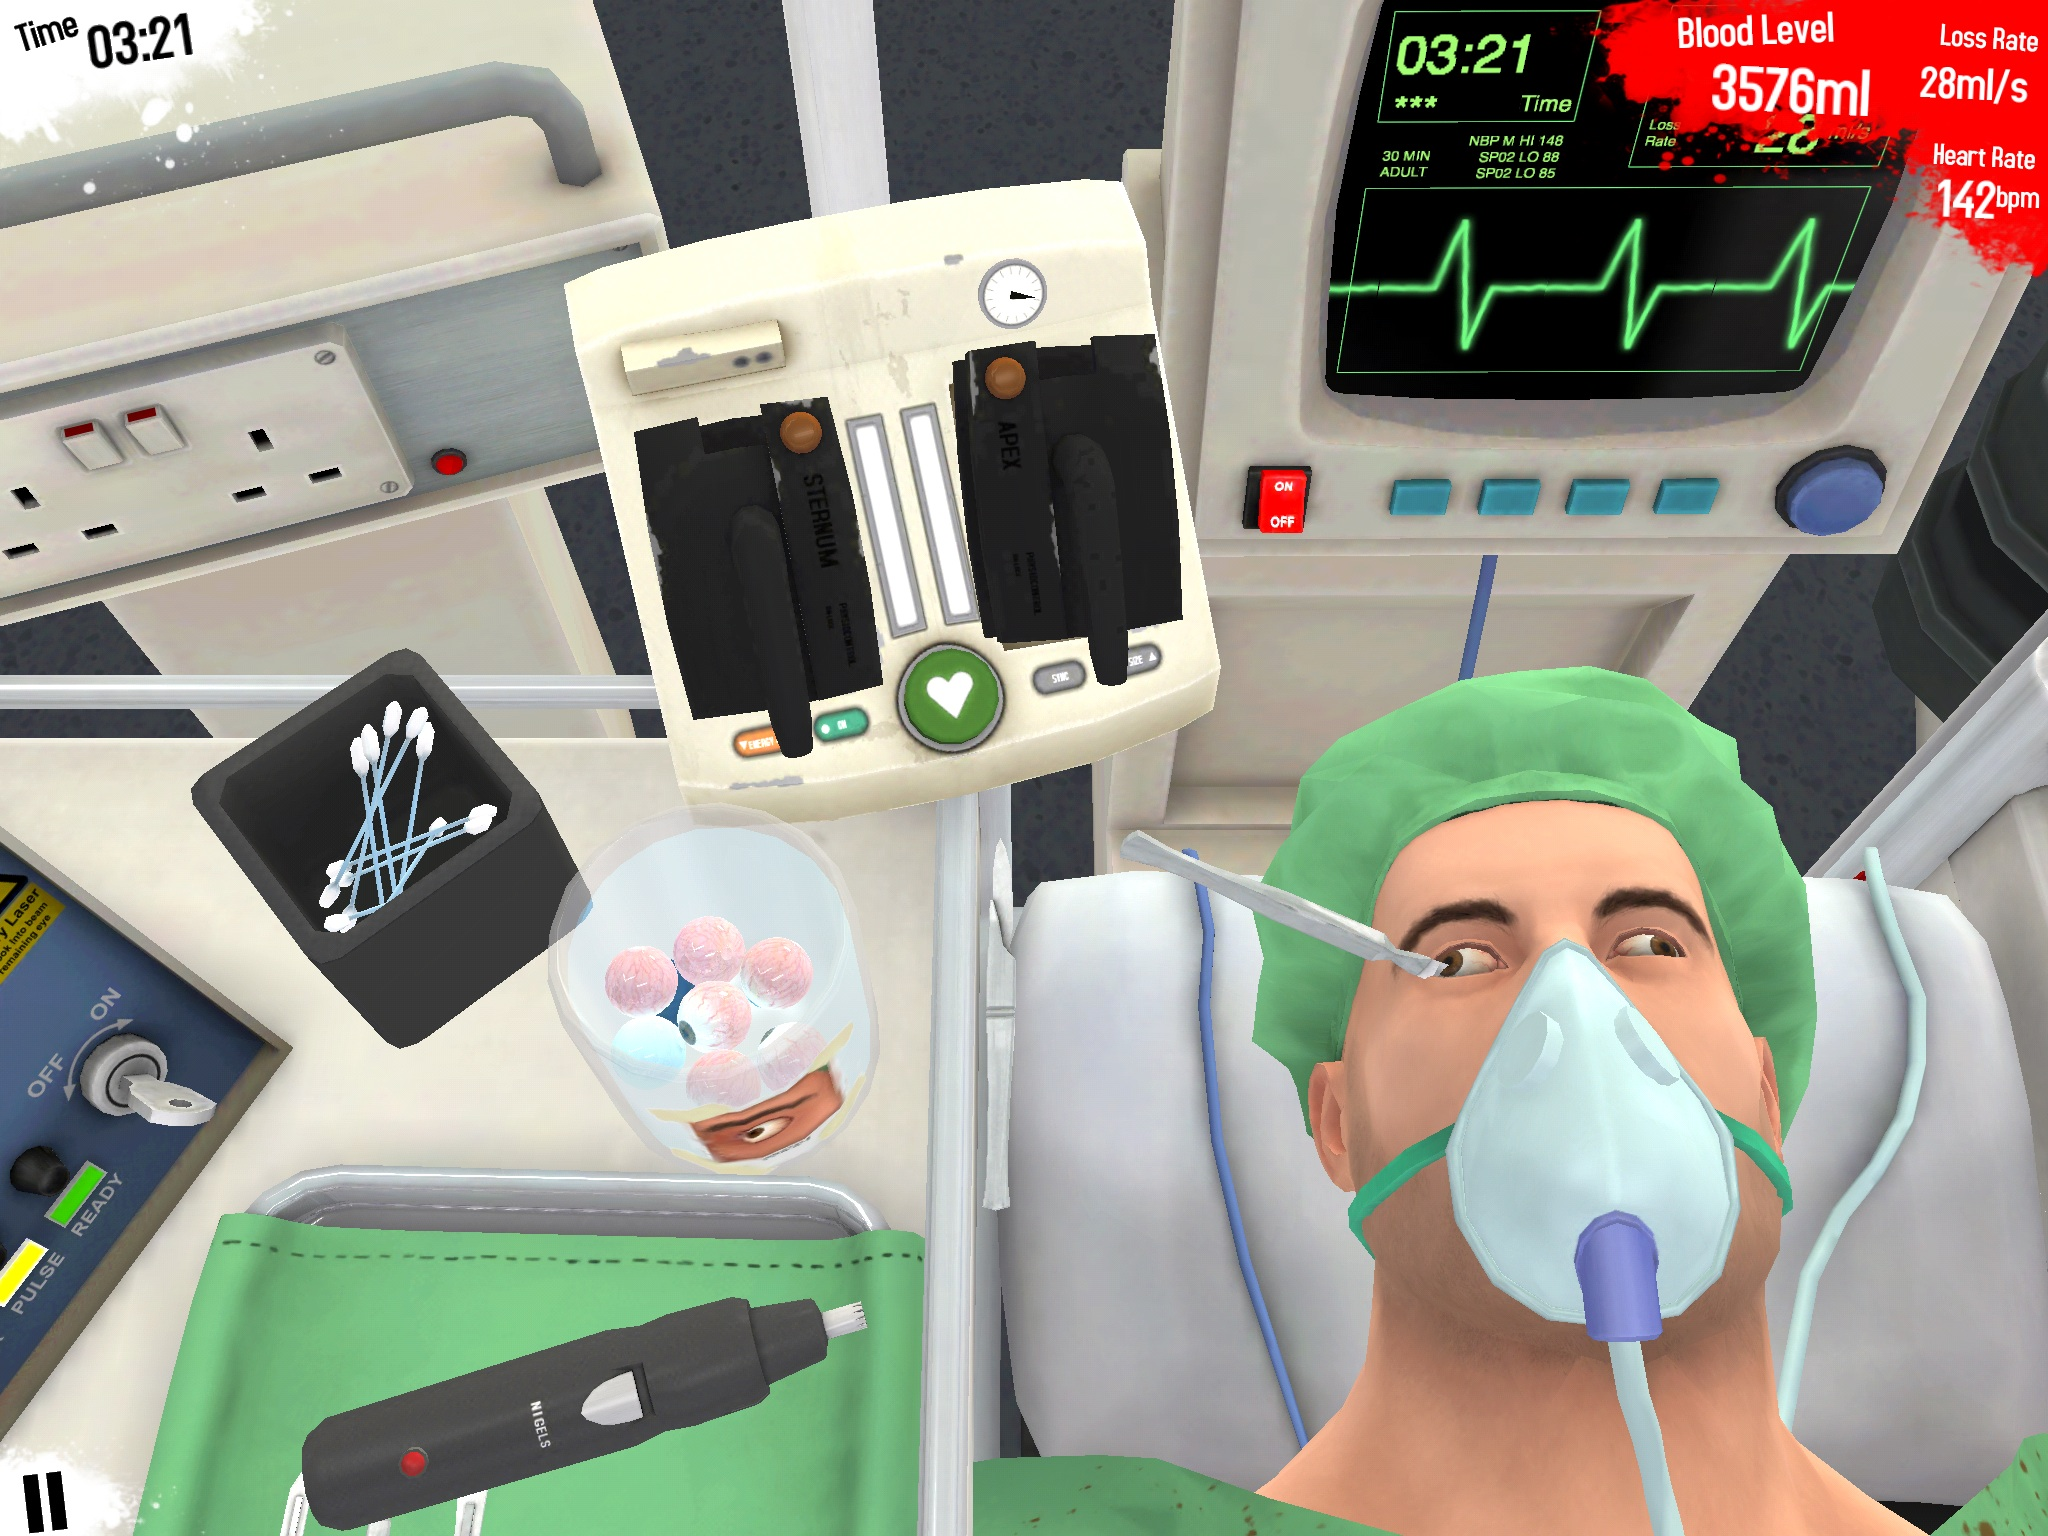 You can now perform an alien transplant in the new Surgeon Simulator update